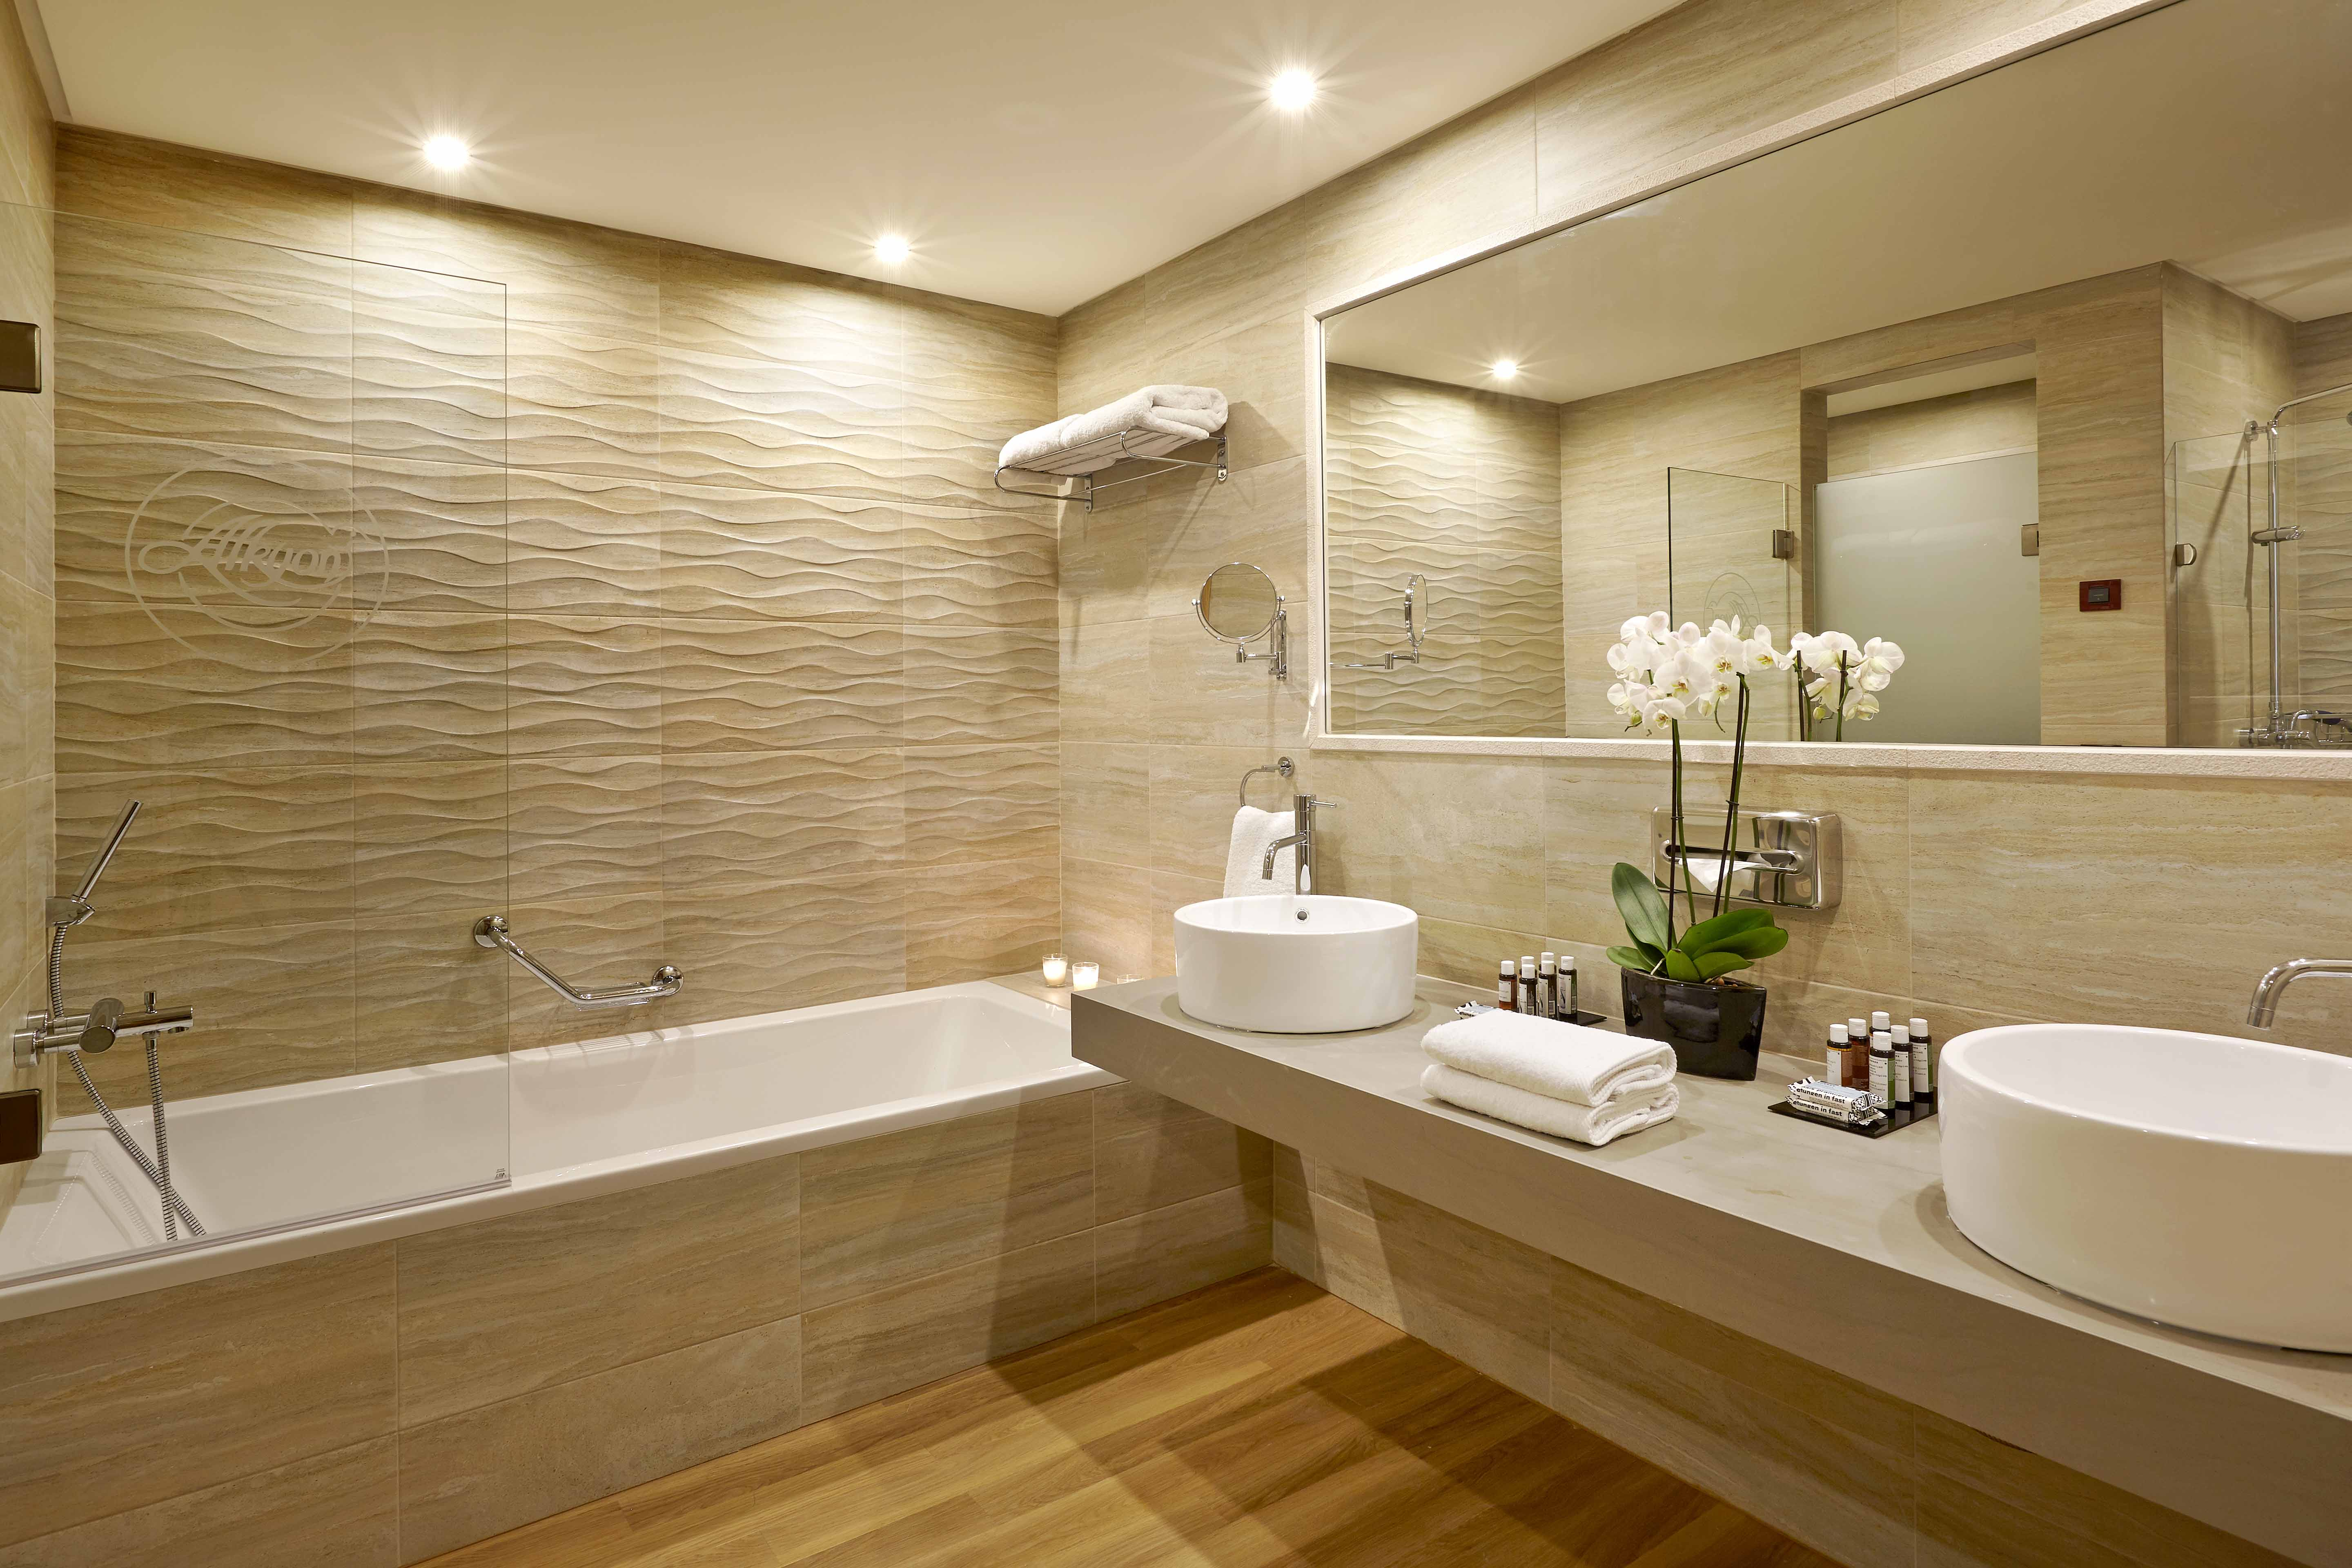 new how to make a bathroom vanity gallery-Amazing How to Make A Bathroom Vanity Photo